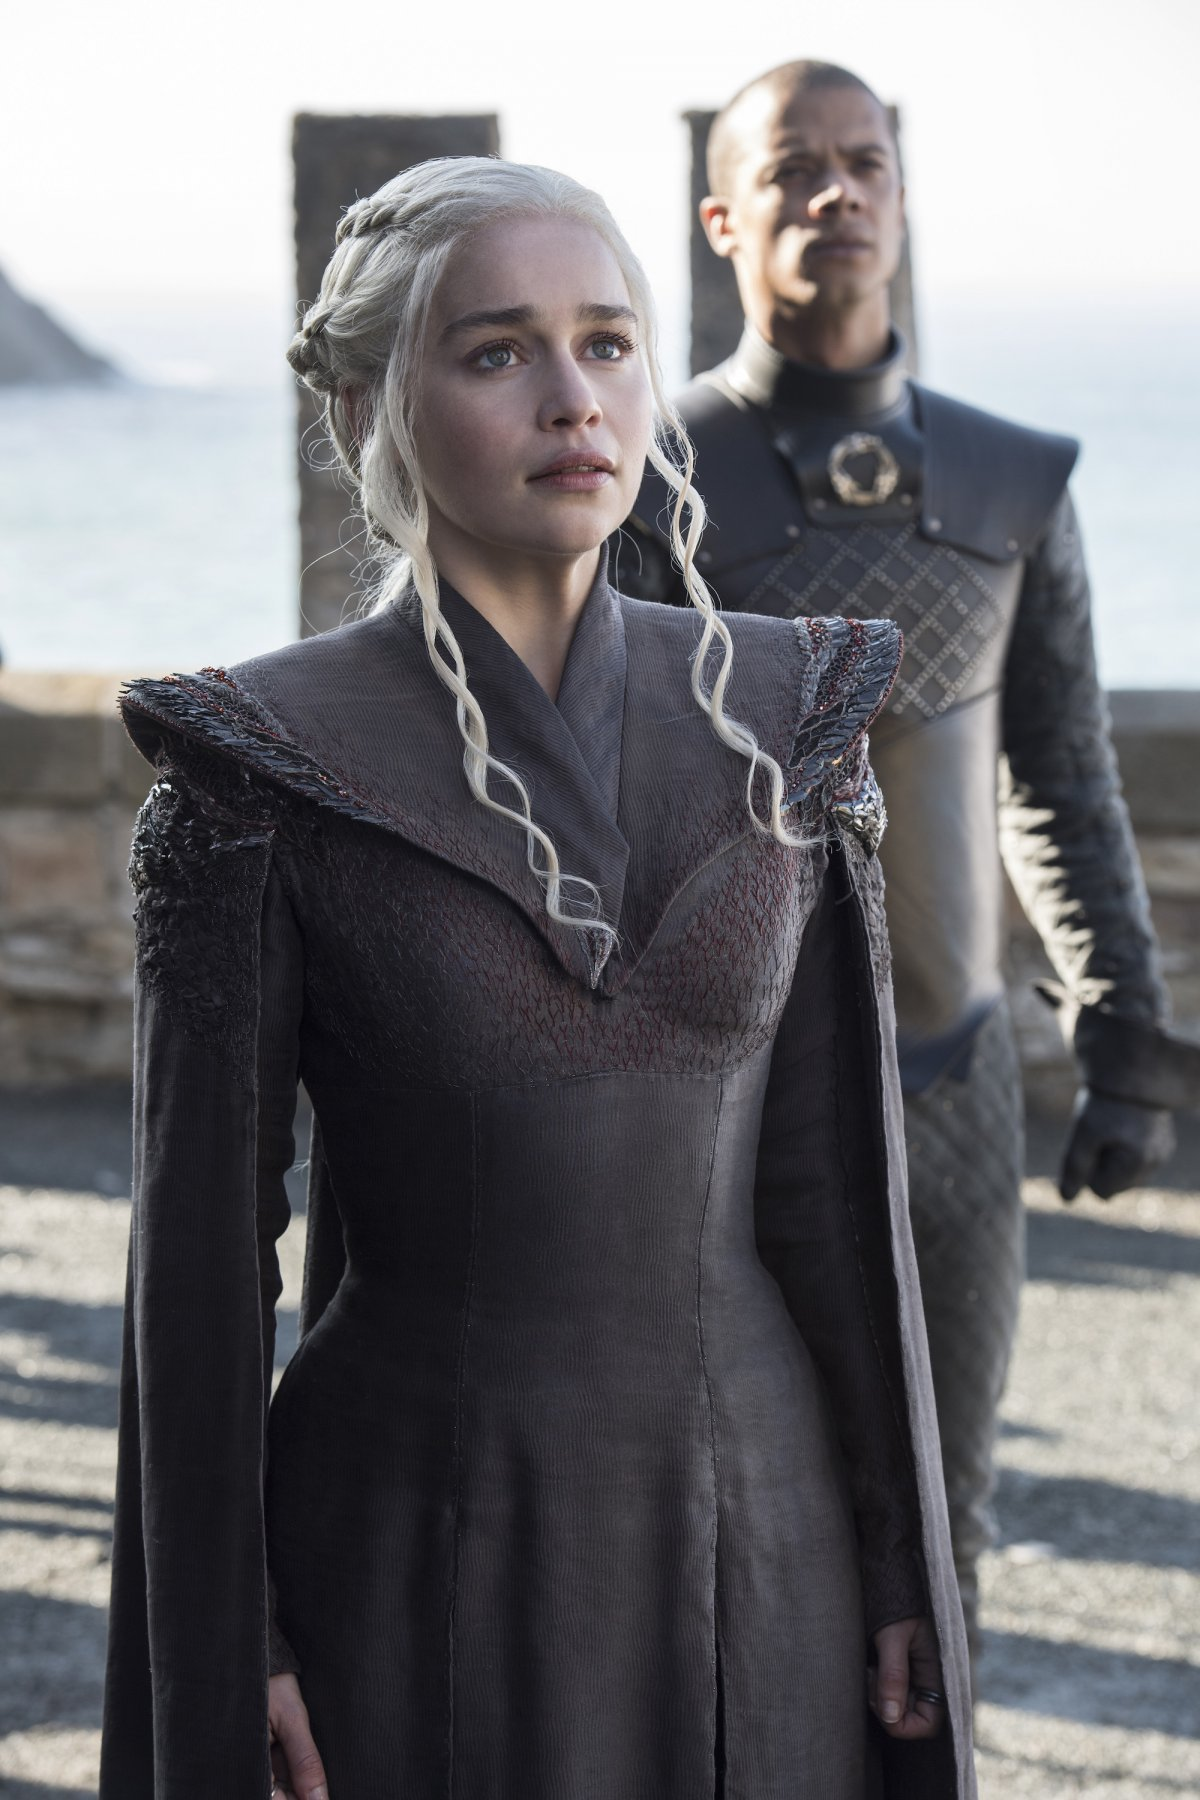 next-we-see-another-view-of-daenerys-and-grey-worm-arriving-at-dragonstone--an-ancient-targaryen-stronghold-previously-occupied-by-stannis-baratheon